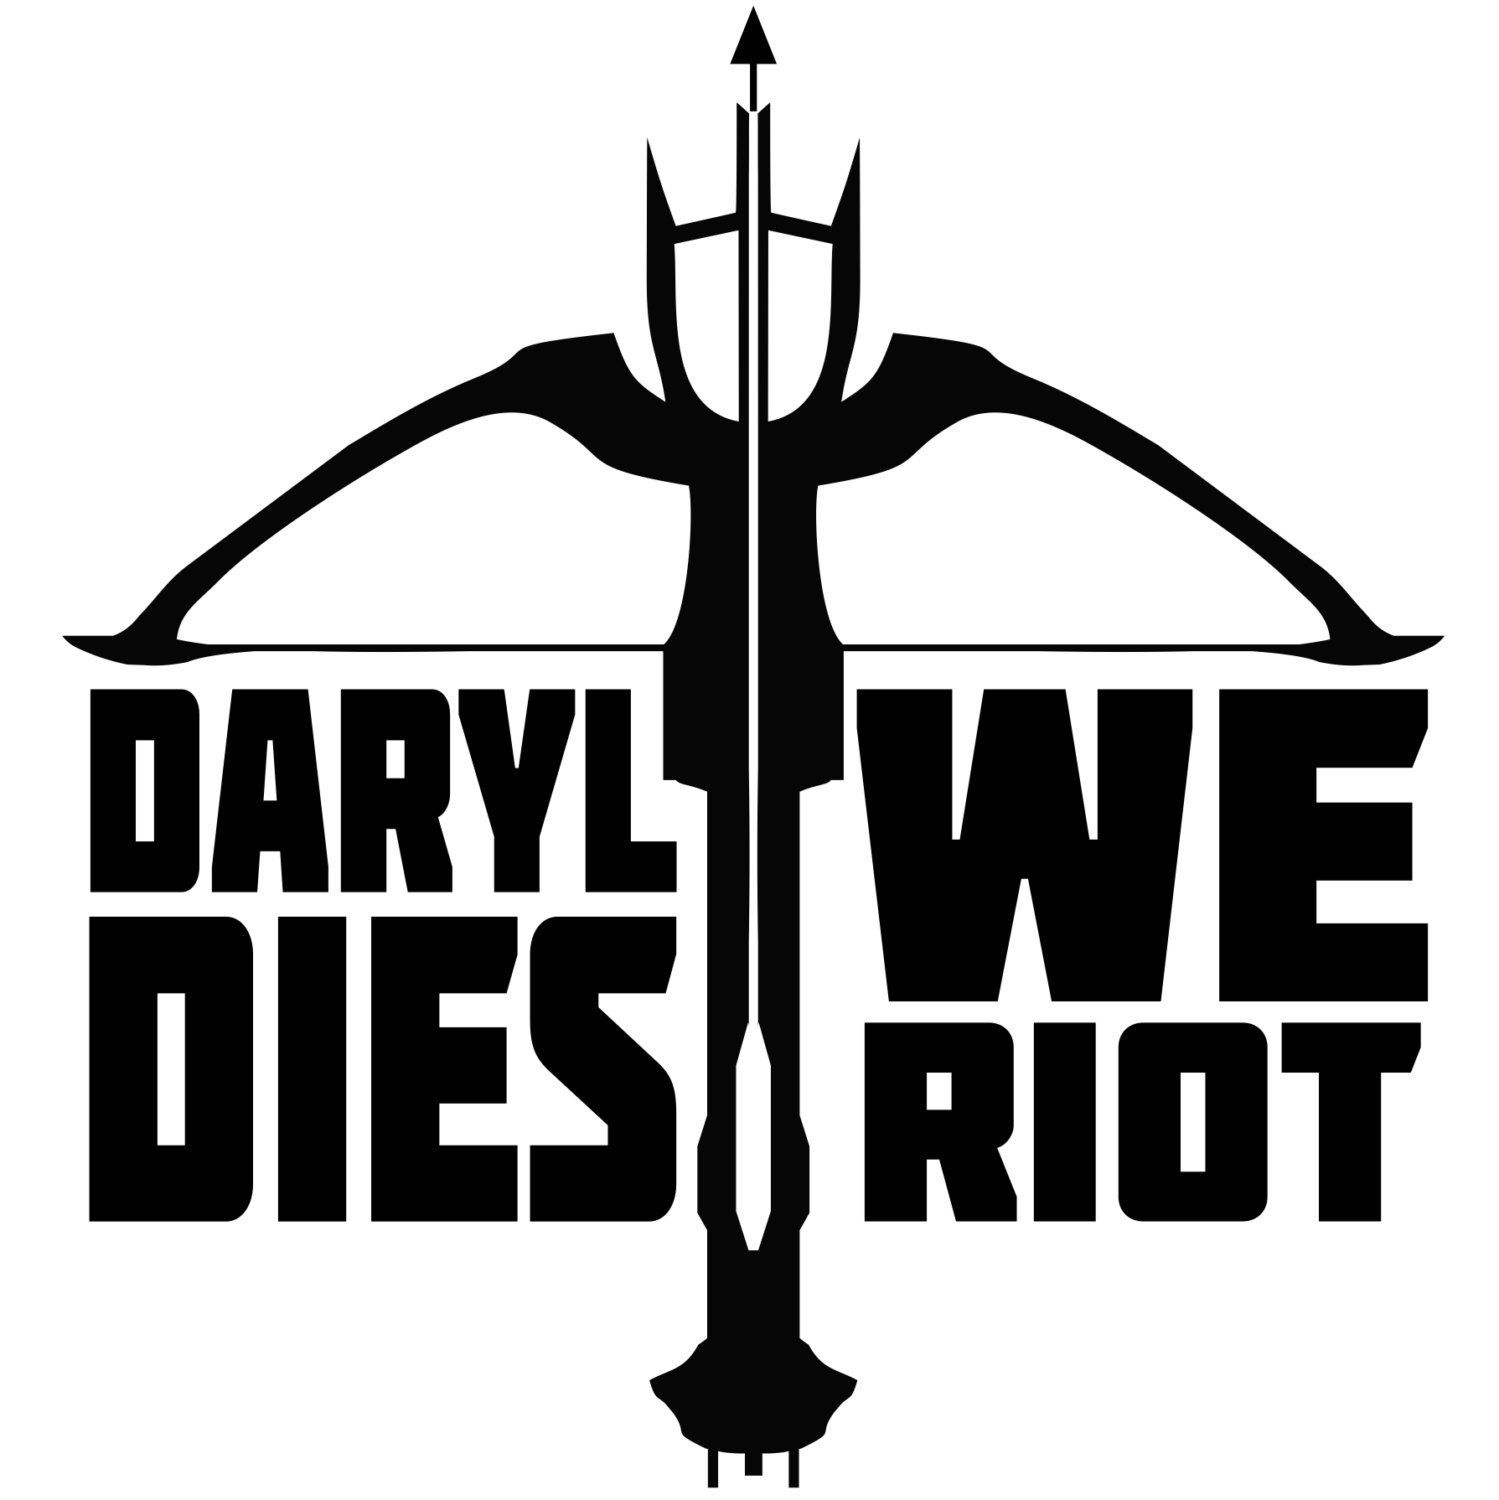 Walking Dead Sticker Car Truck Decal Vinyl Window Laptop Daryl Quote Crossbow By Lennysgraphics On Stencil Template Silhouette Cameo Projects The Walking Dead [ jpg ]